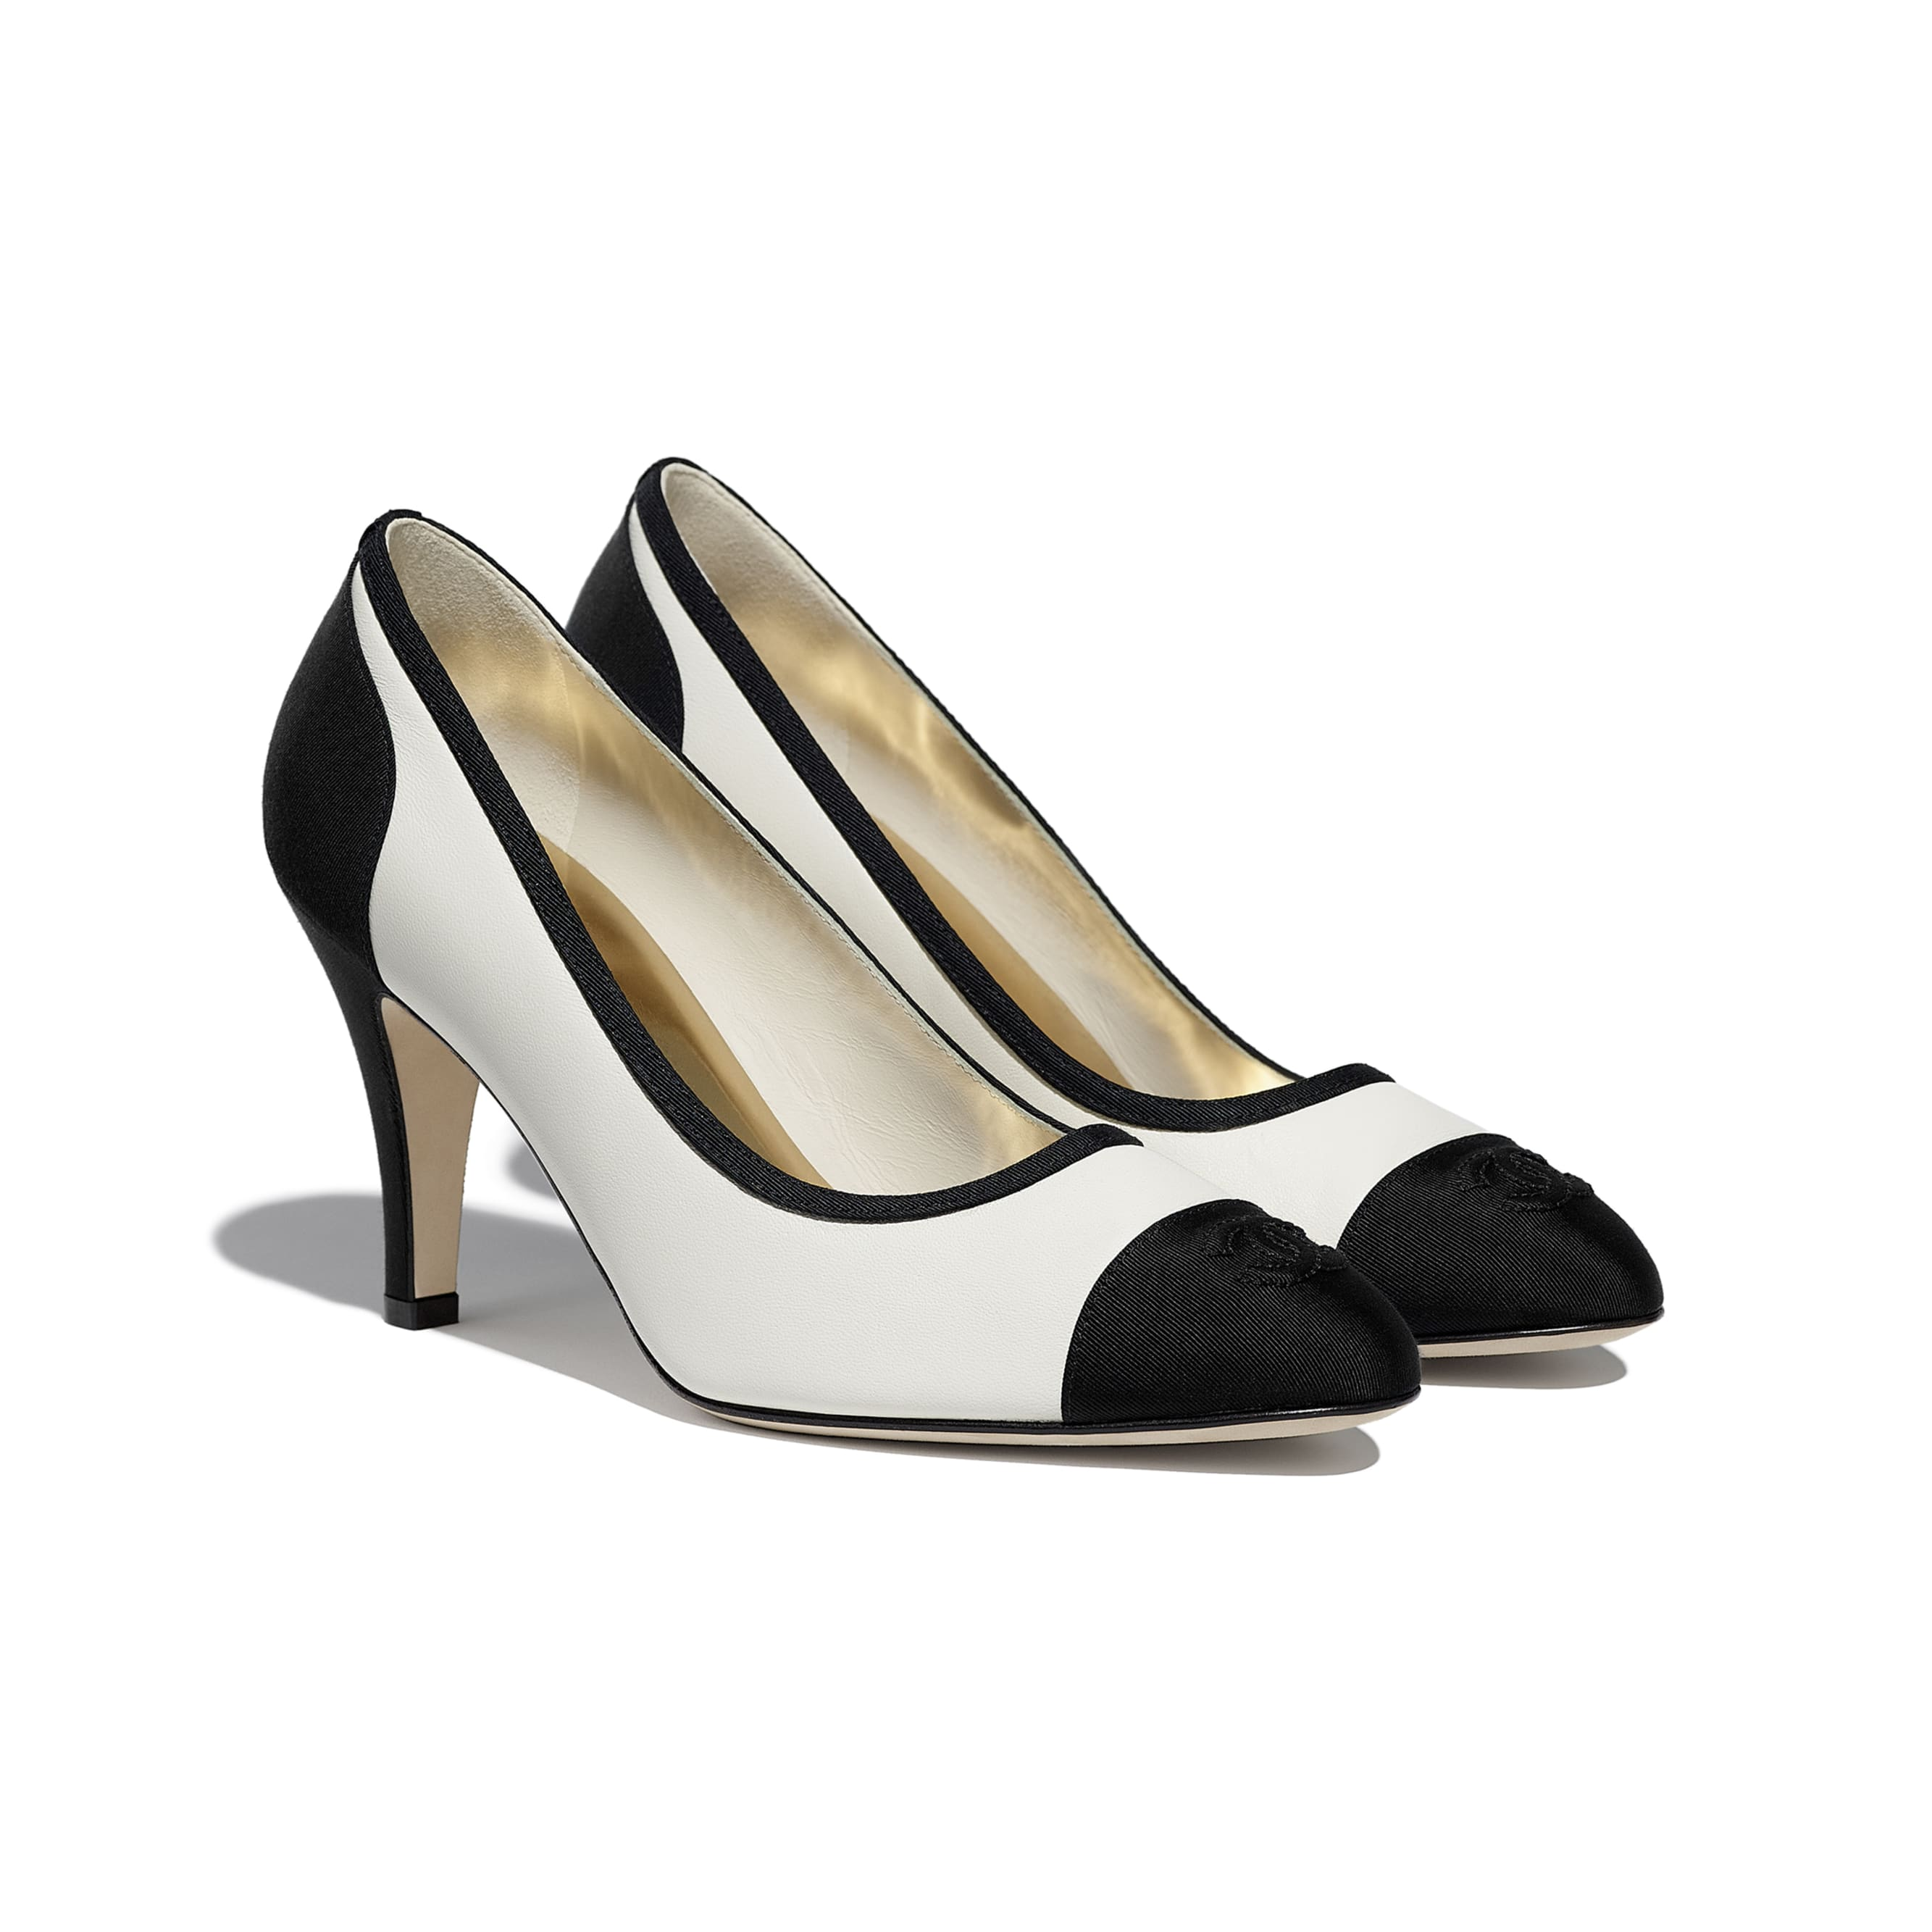 Pumps - Ivory & Black - Lambskin & Grosgrain - CHANEL - Alternative view - see standard sized version